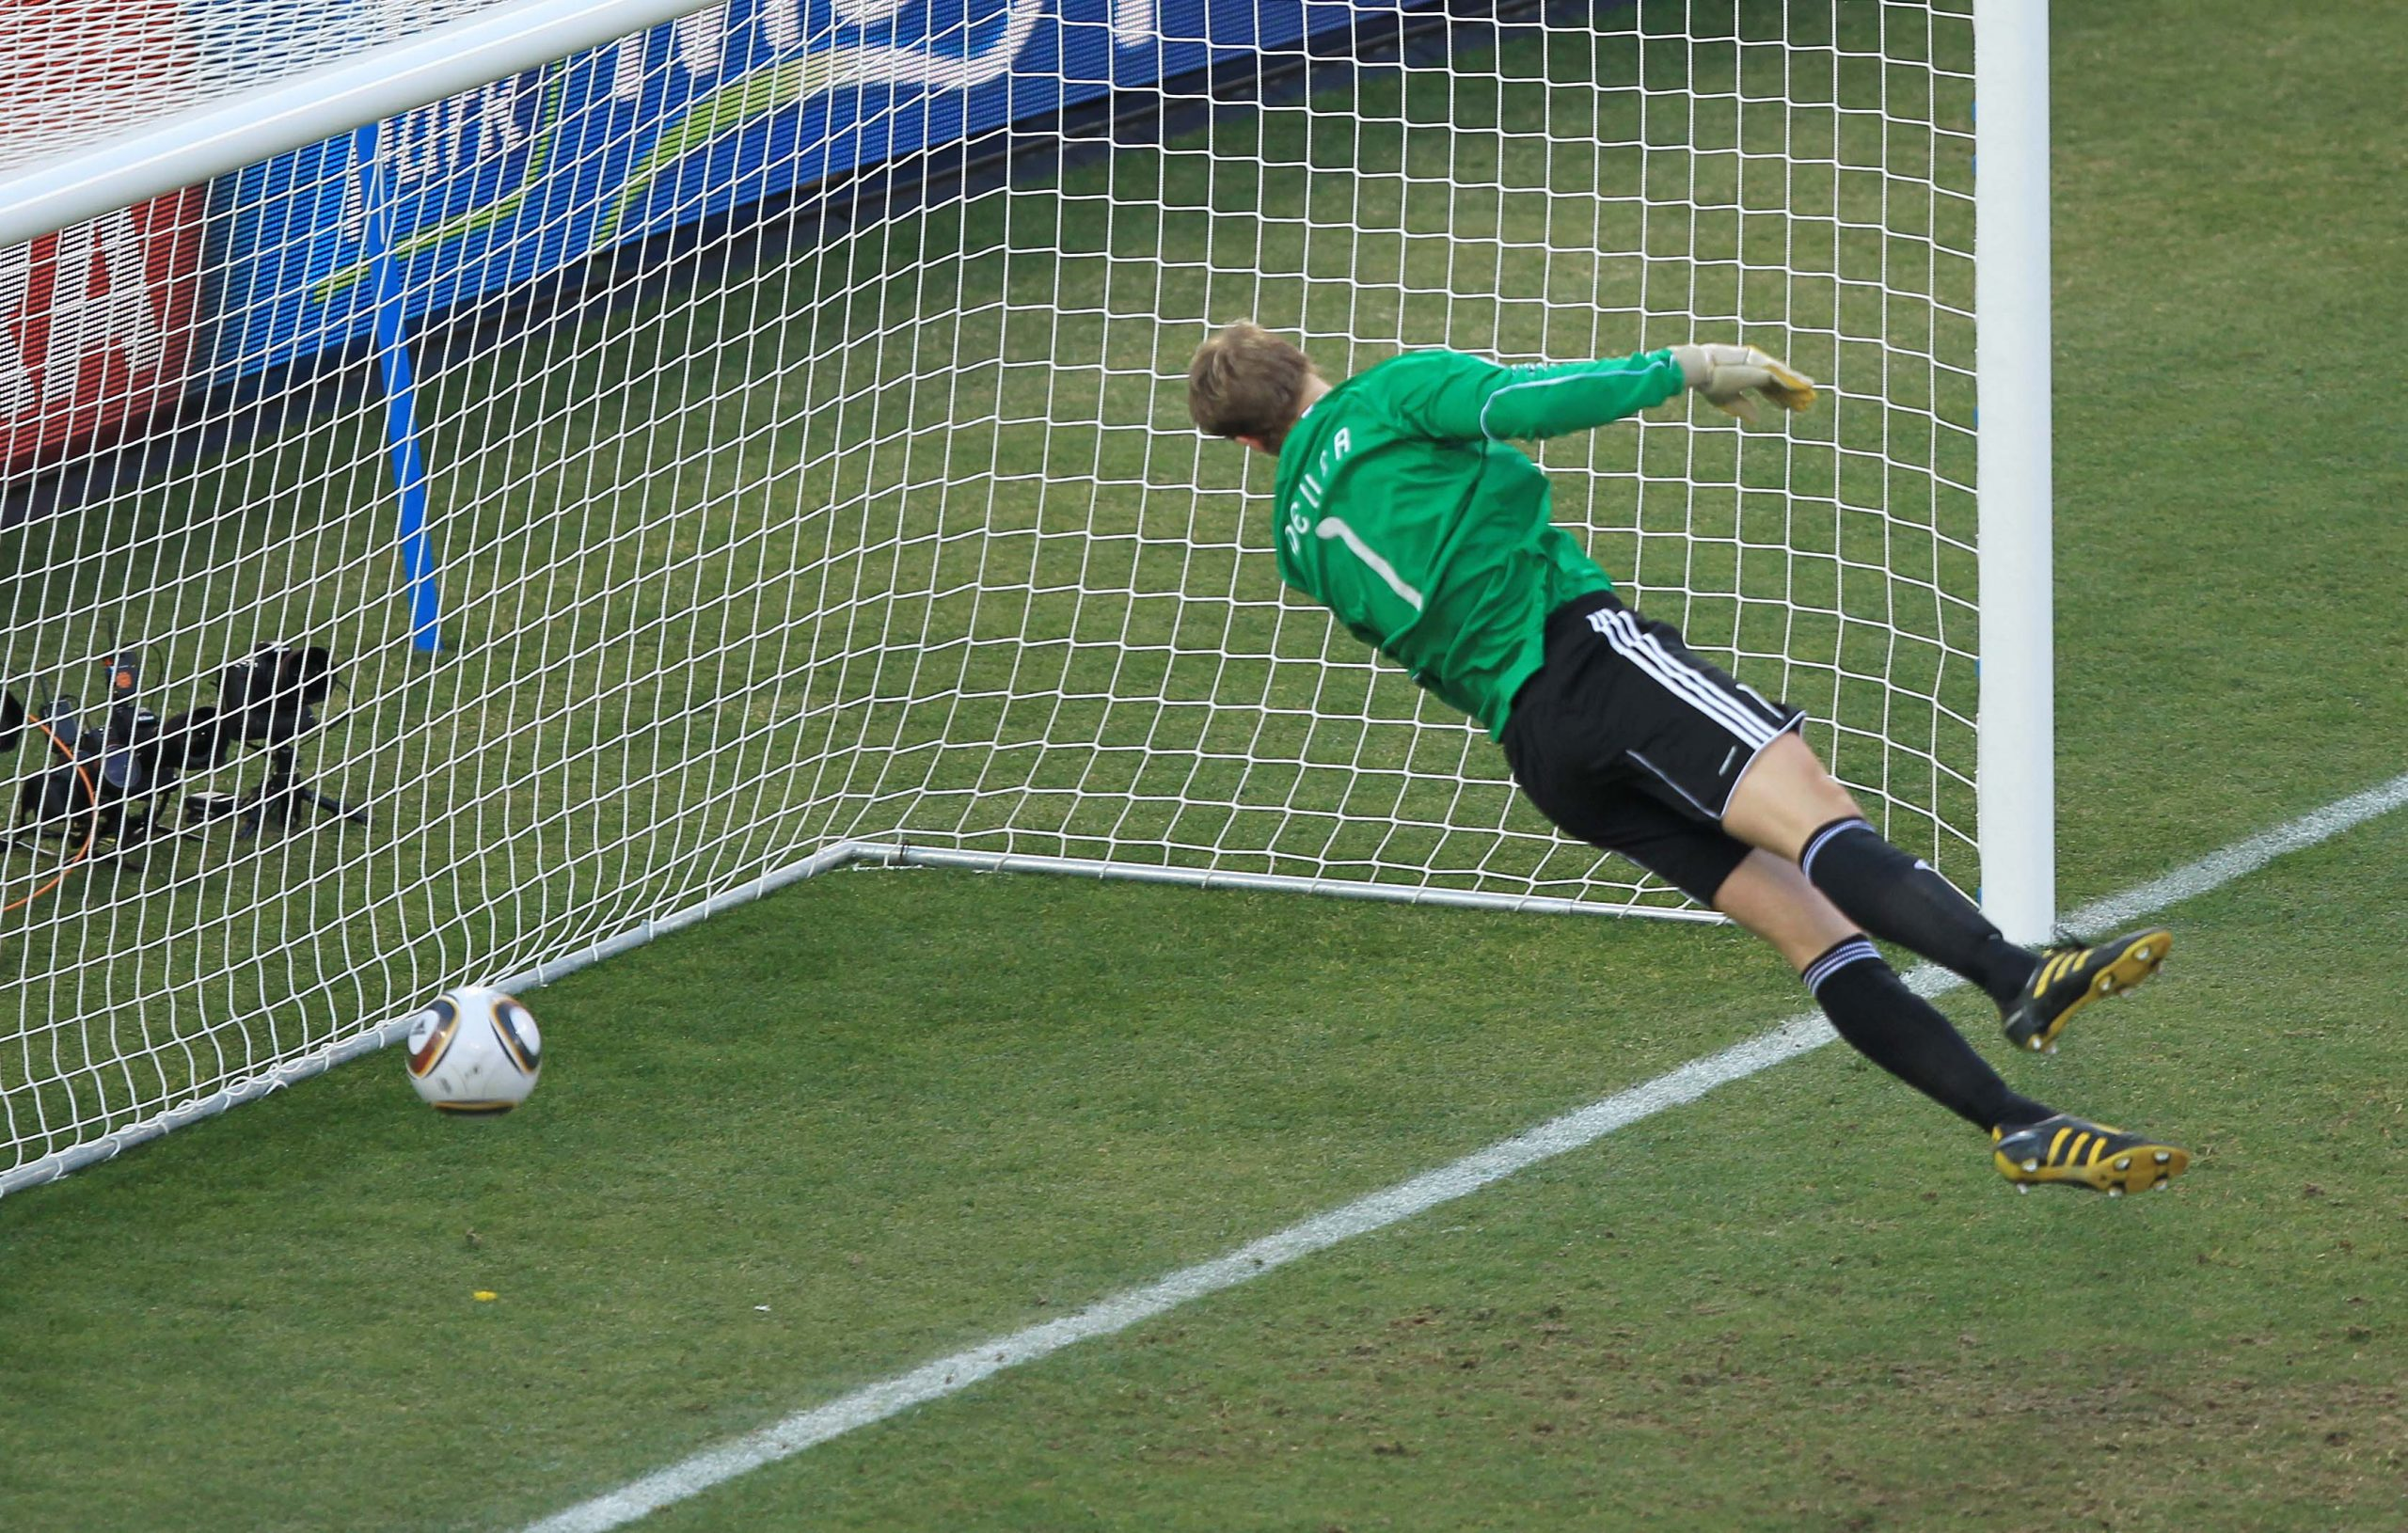 Germany v England FIFA World Cup Second Round - South Africa 2010 England's Frank Lampard Manuel Neuer Lampard Nojer